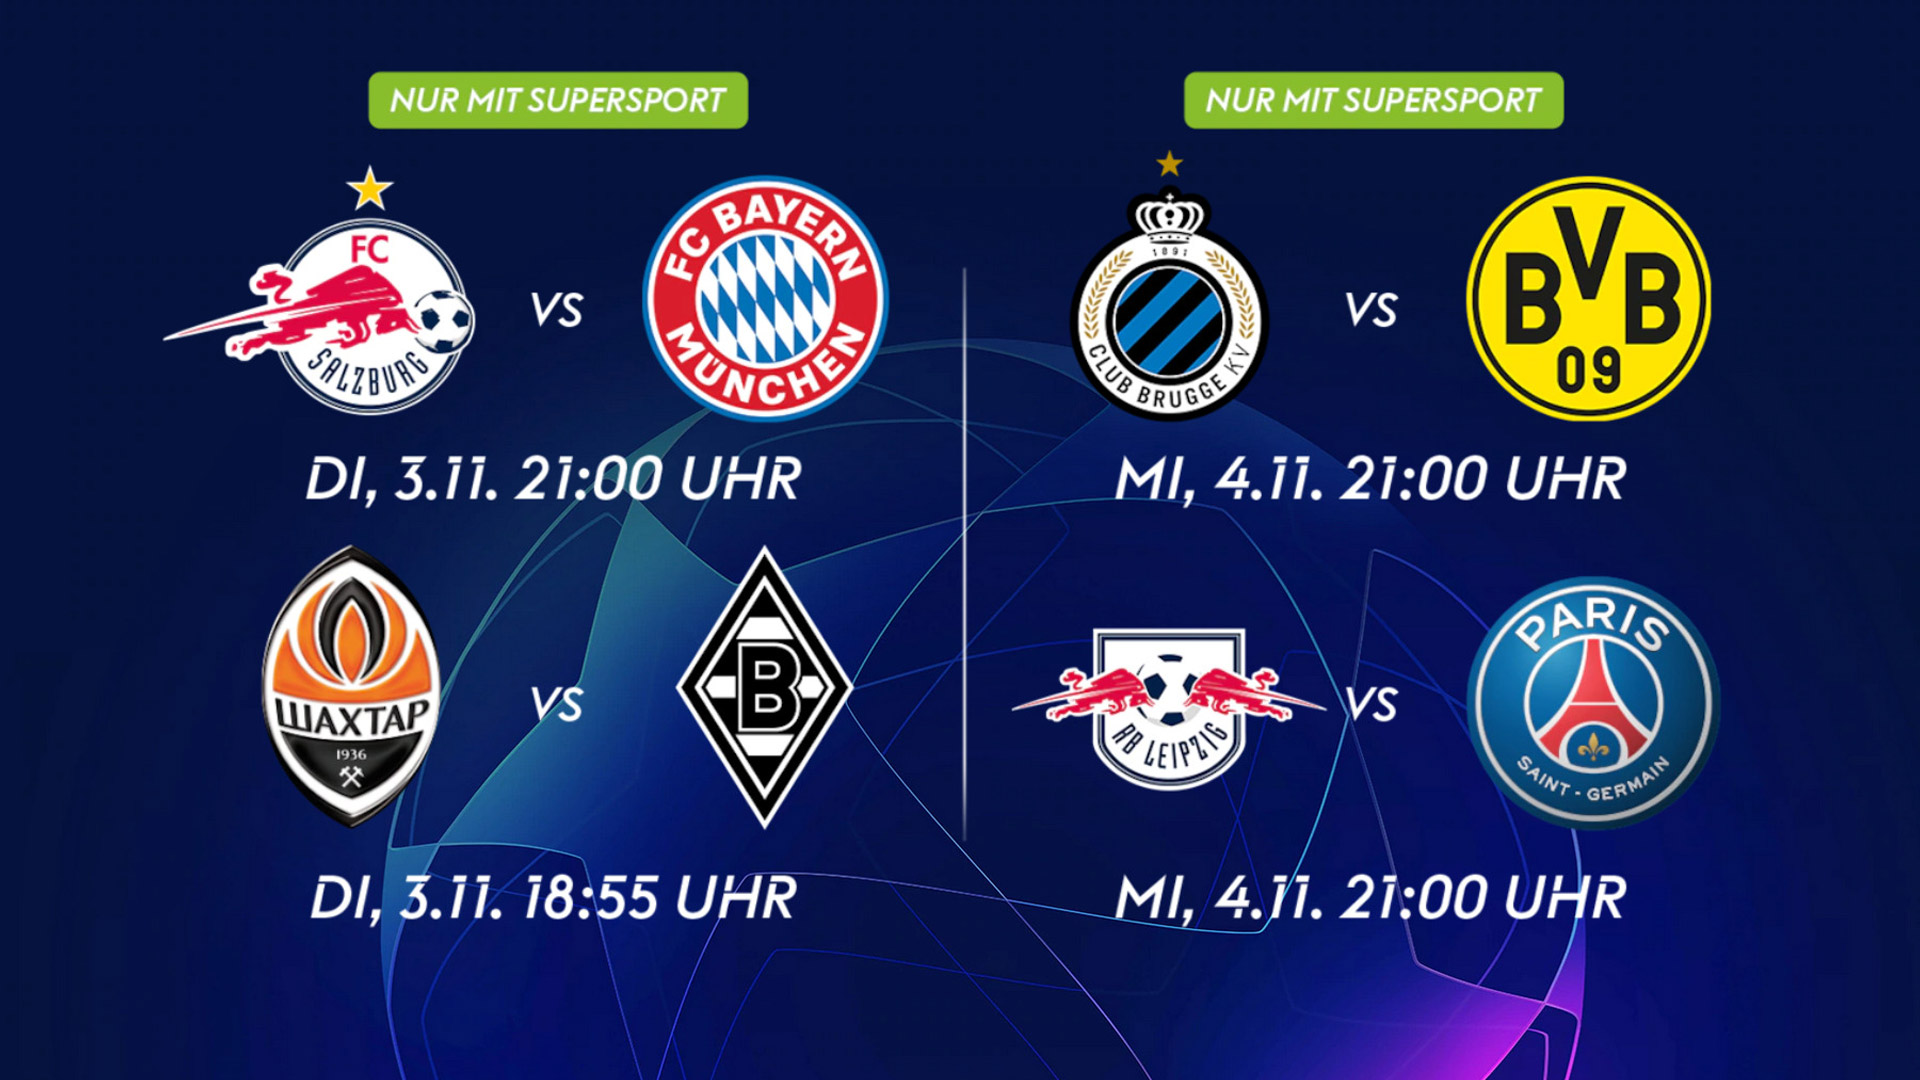 Sky Programm Champions League